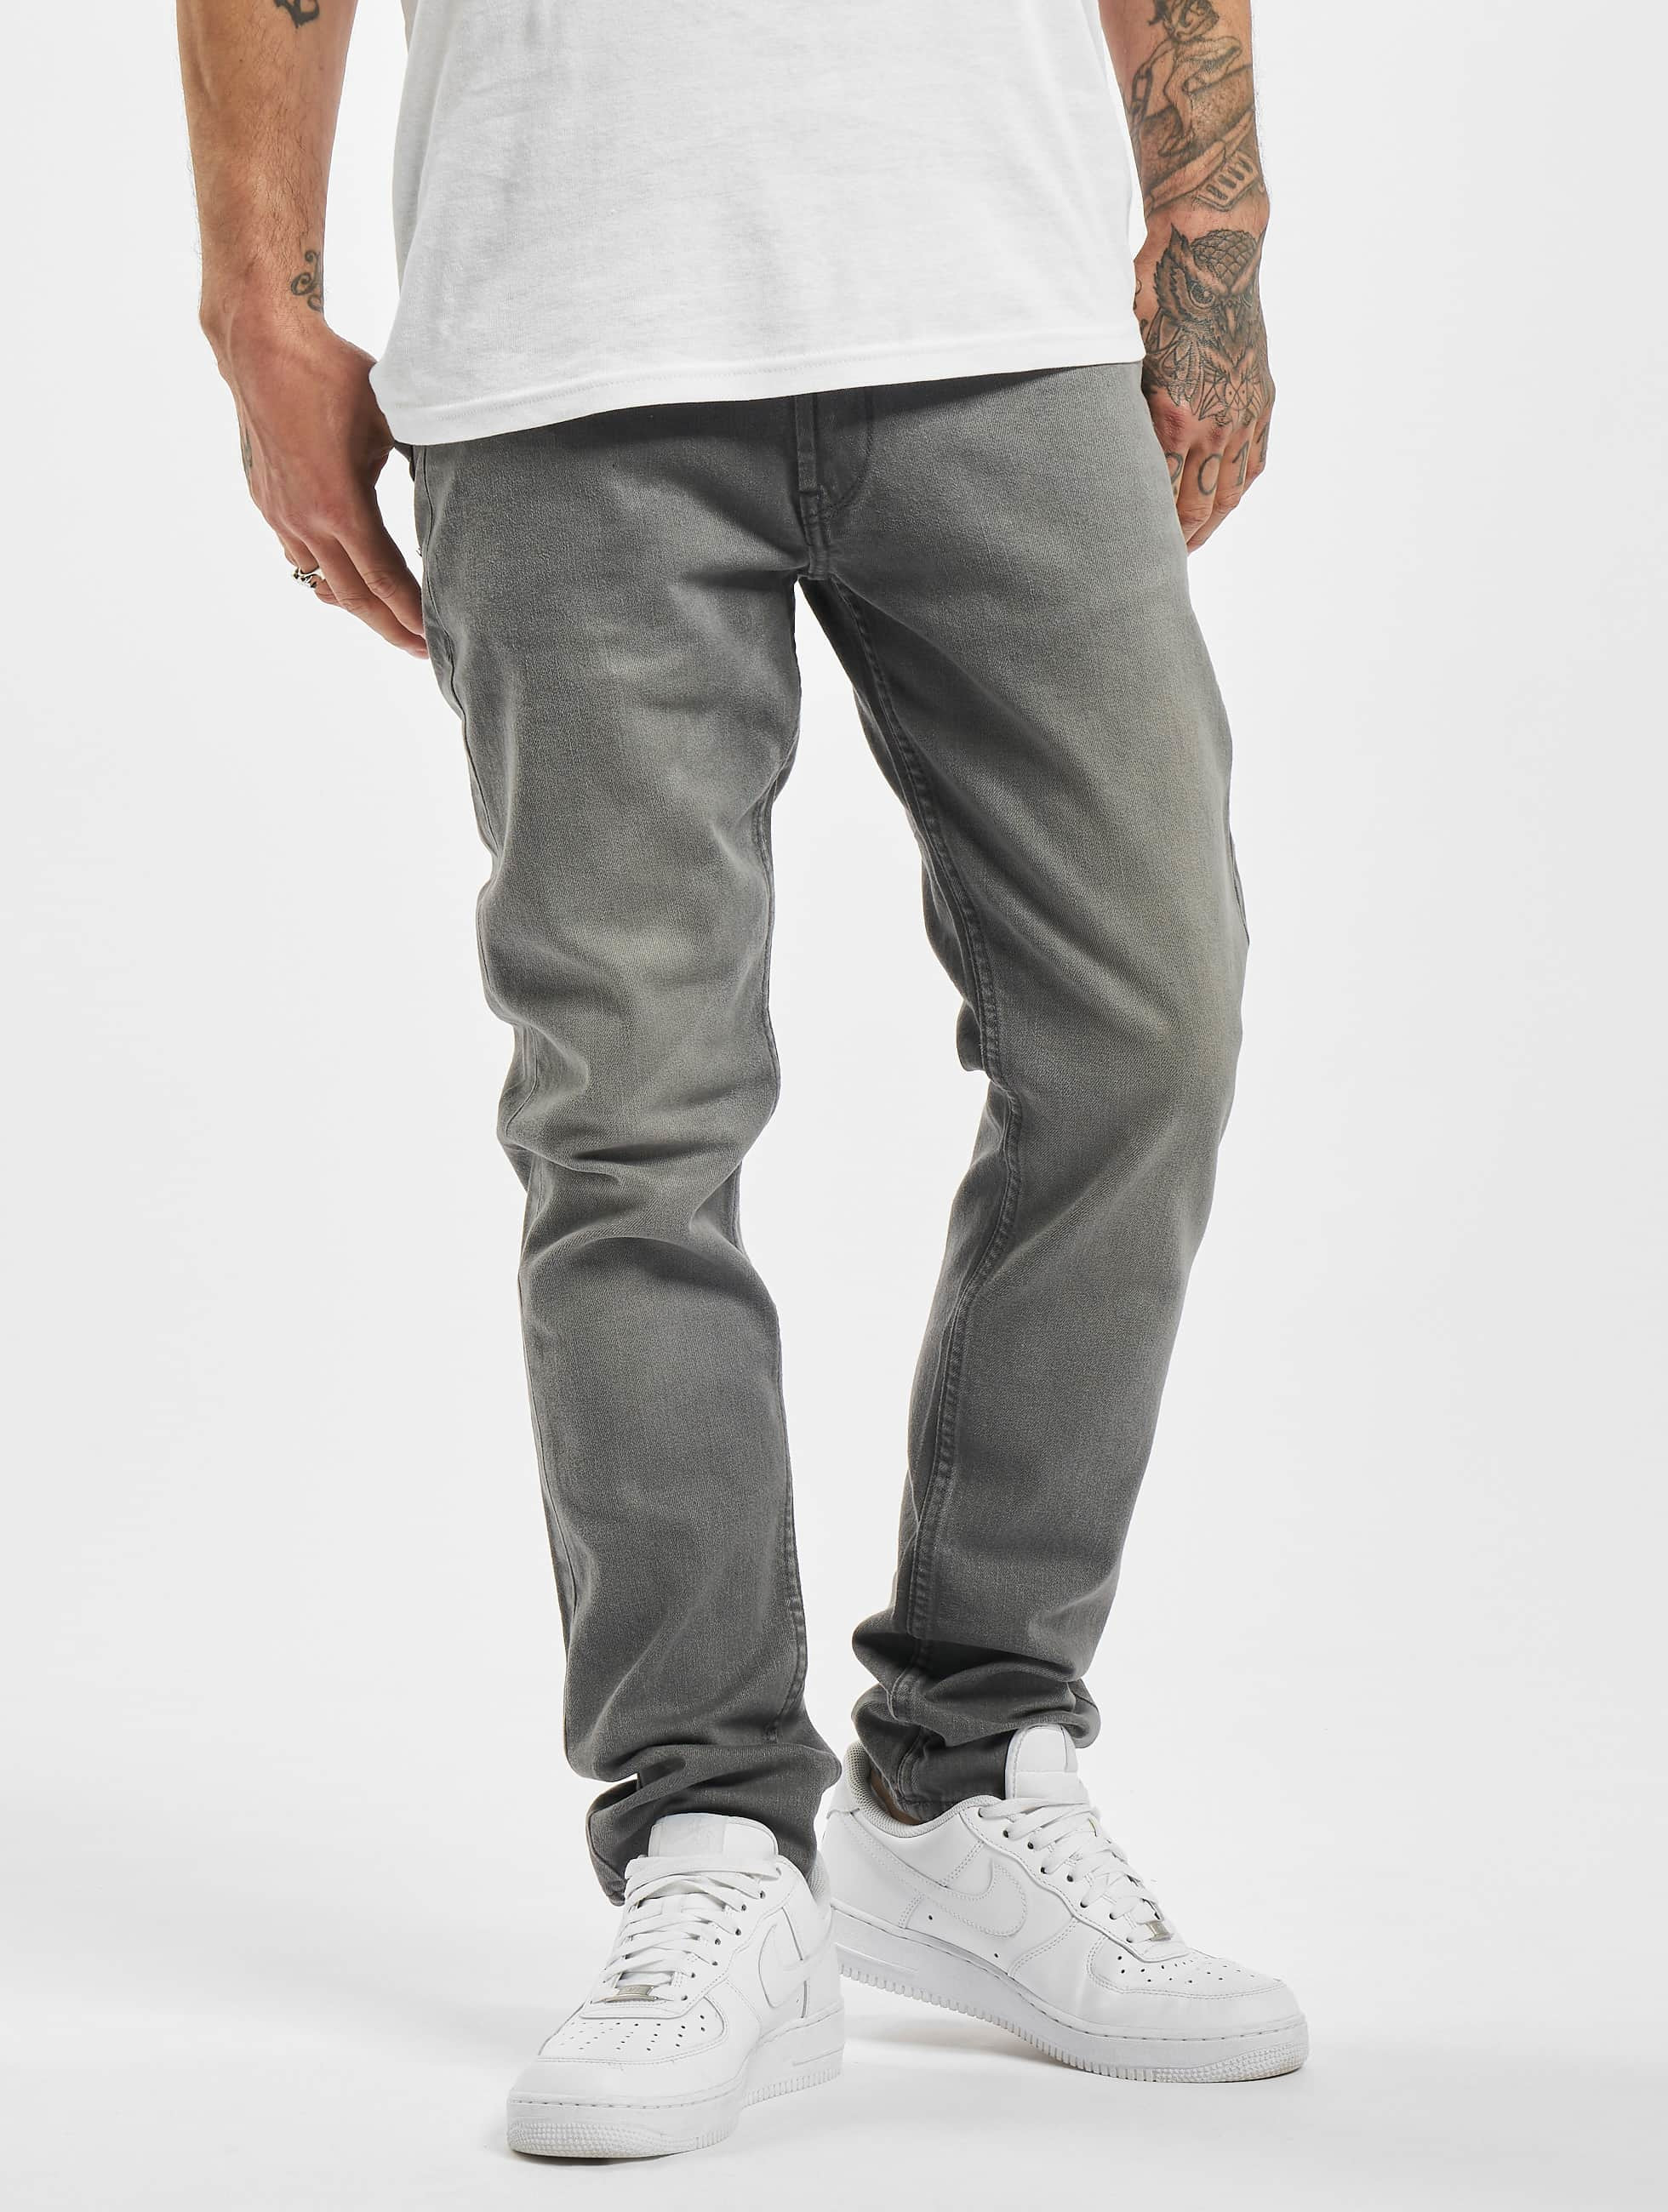 Straight Fit Jeans Nova II in grau